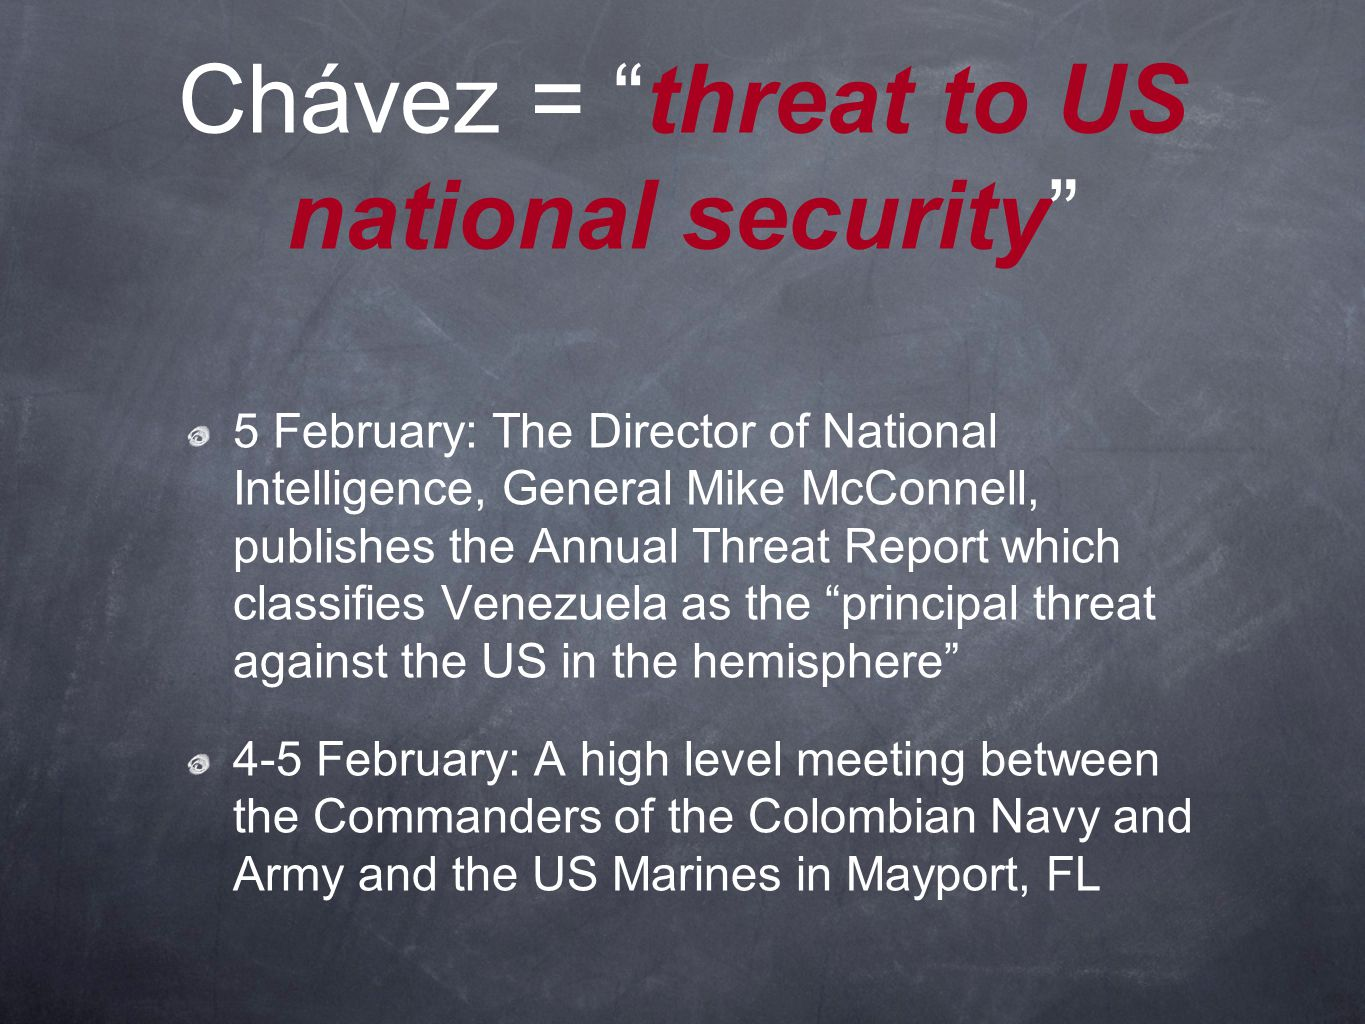 Chávez = threat to US national security 5 February: The Director of National Intelligence, General Mike McConnell, publishes the Annual Threat Report which classifies Venezuela as the principal threat against the US in the hemisphere 4-5 February: A high level meeting between the Commanders of the Colombian Navy and Army and the US Marines in Mayport, FL